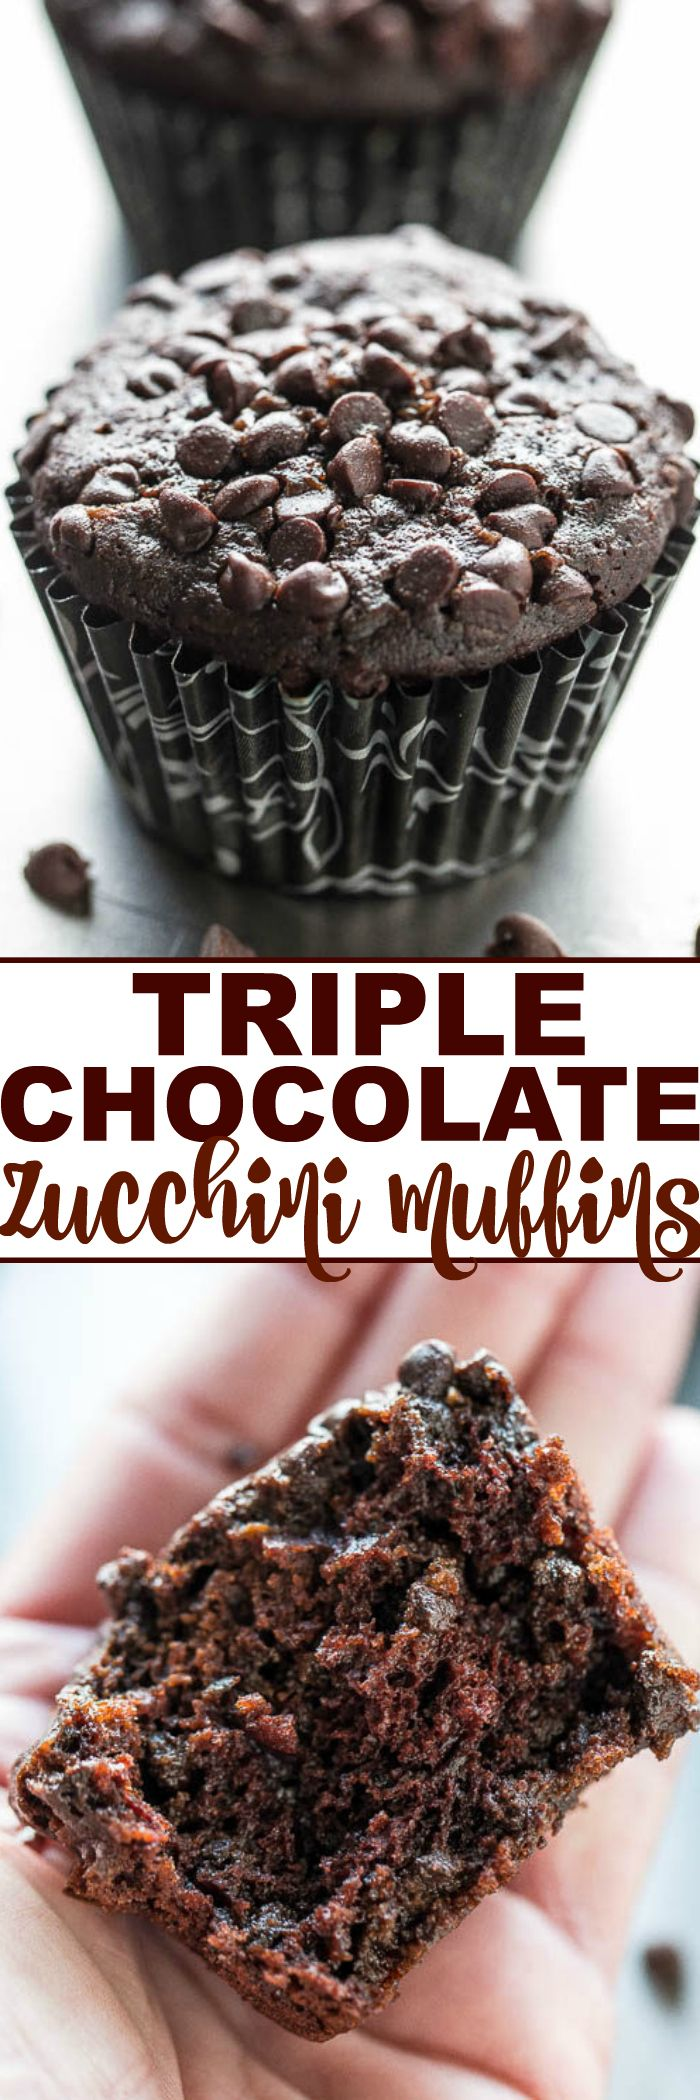 Triple Chocolate Zucchini Muffins - NO dairy or butter and only 1/4 cup oil in…